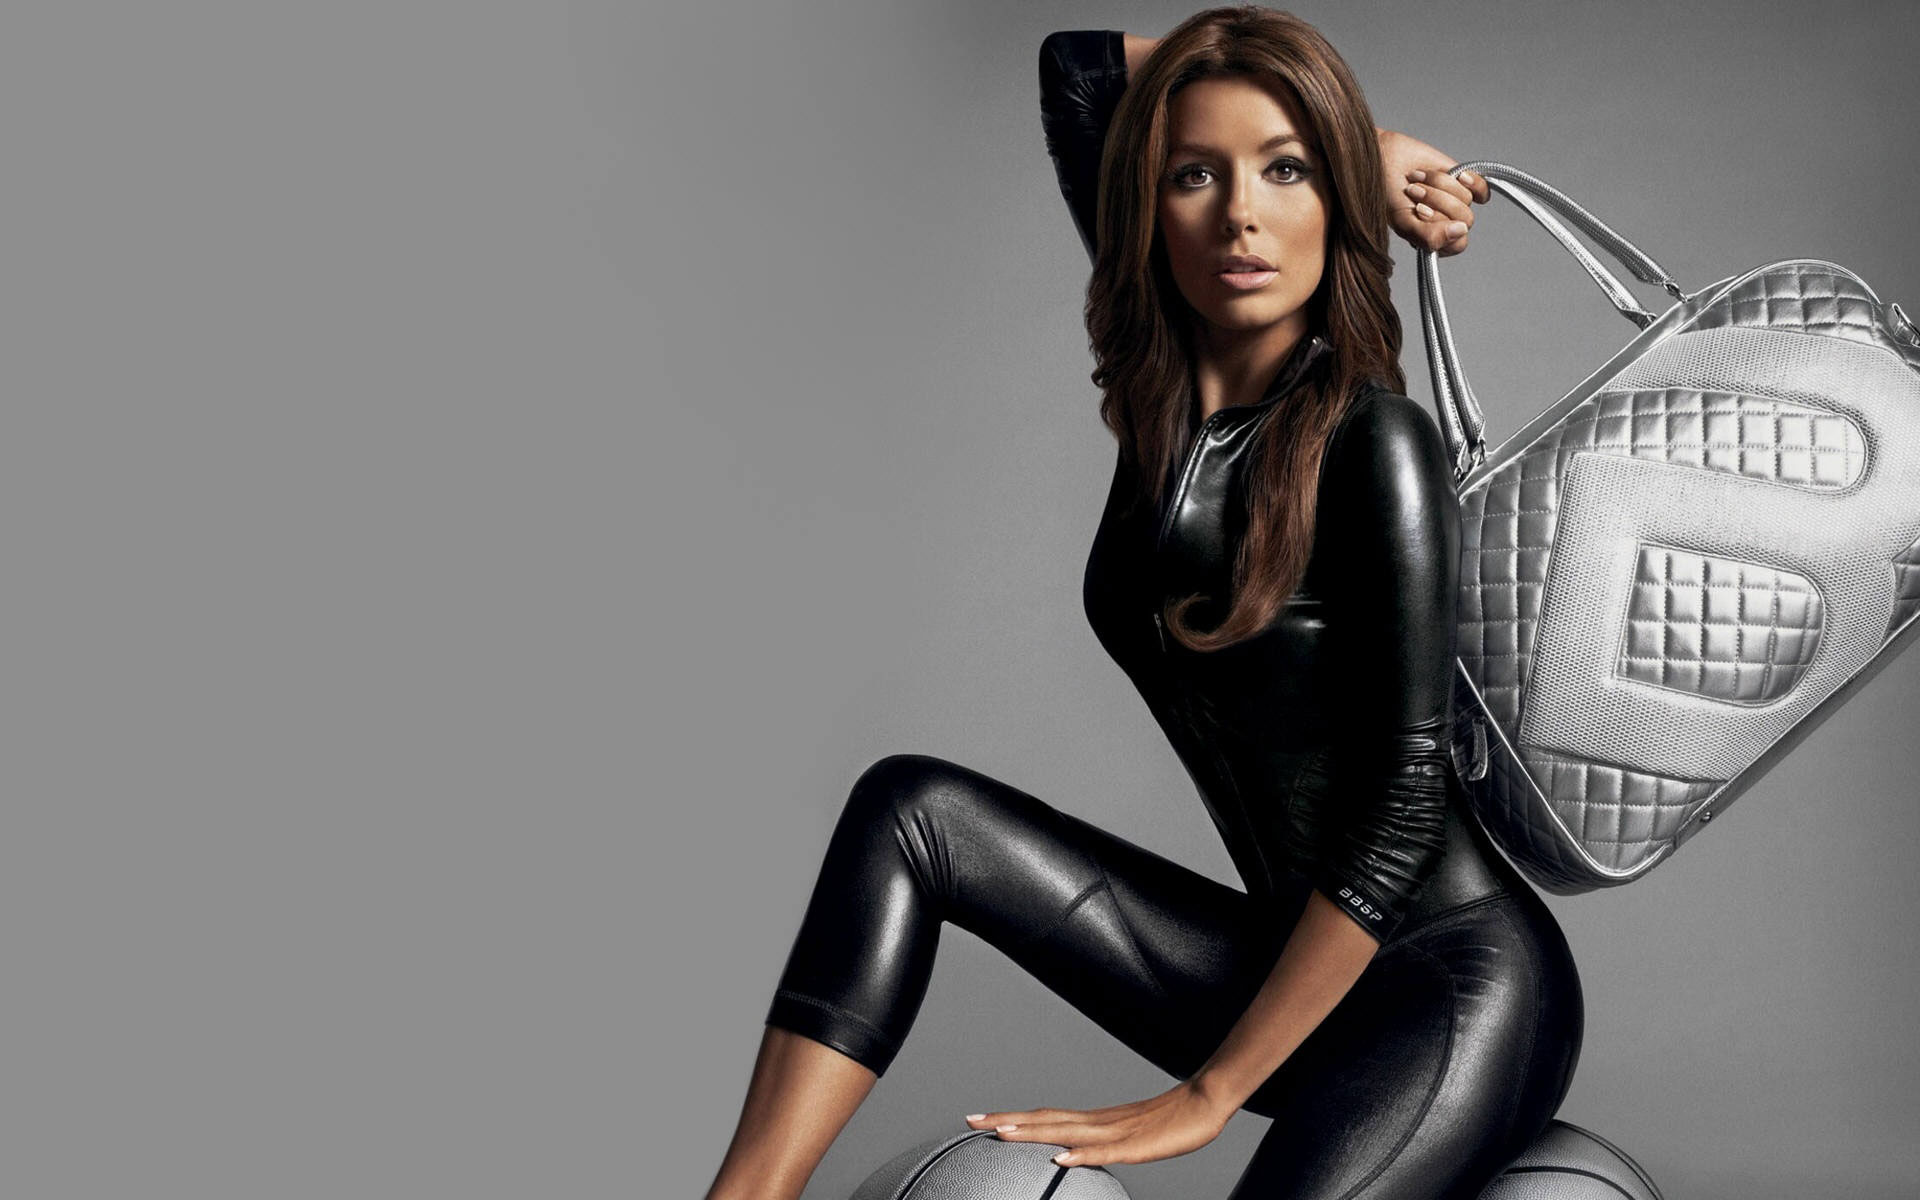 Stylish Girl Wallpaper For Iphone Eva Longoria Wallpapers Pictures Images